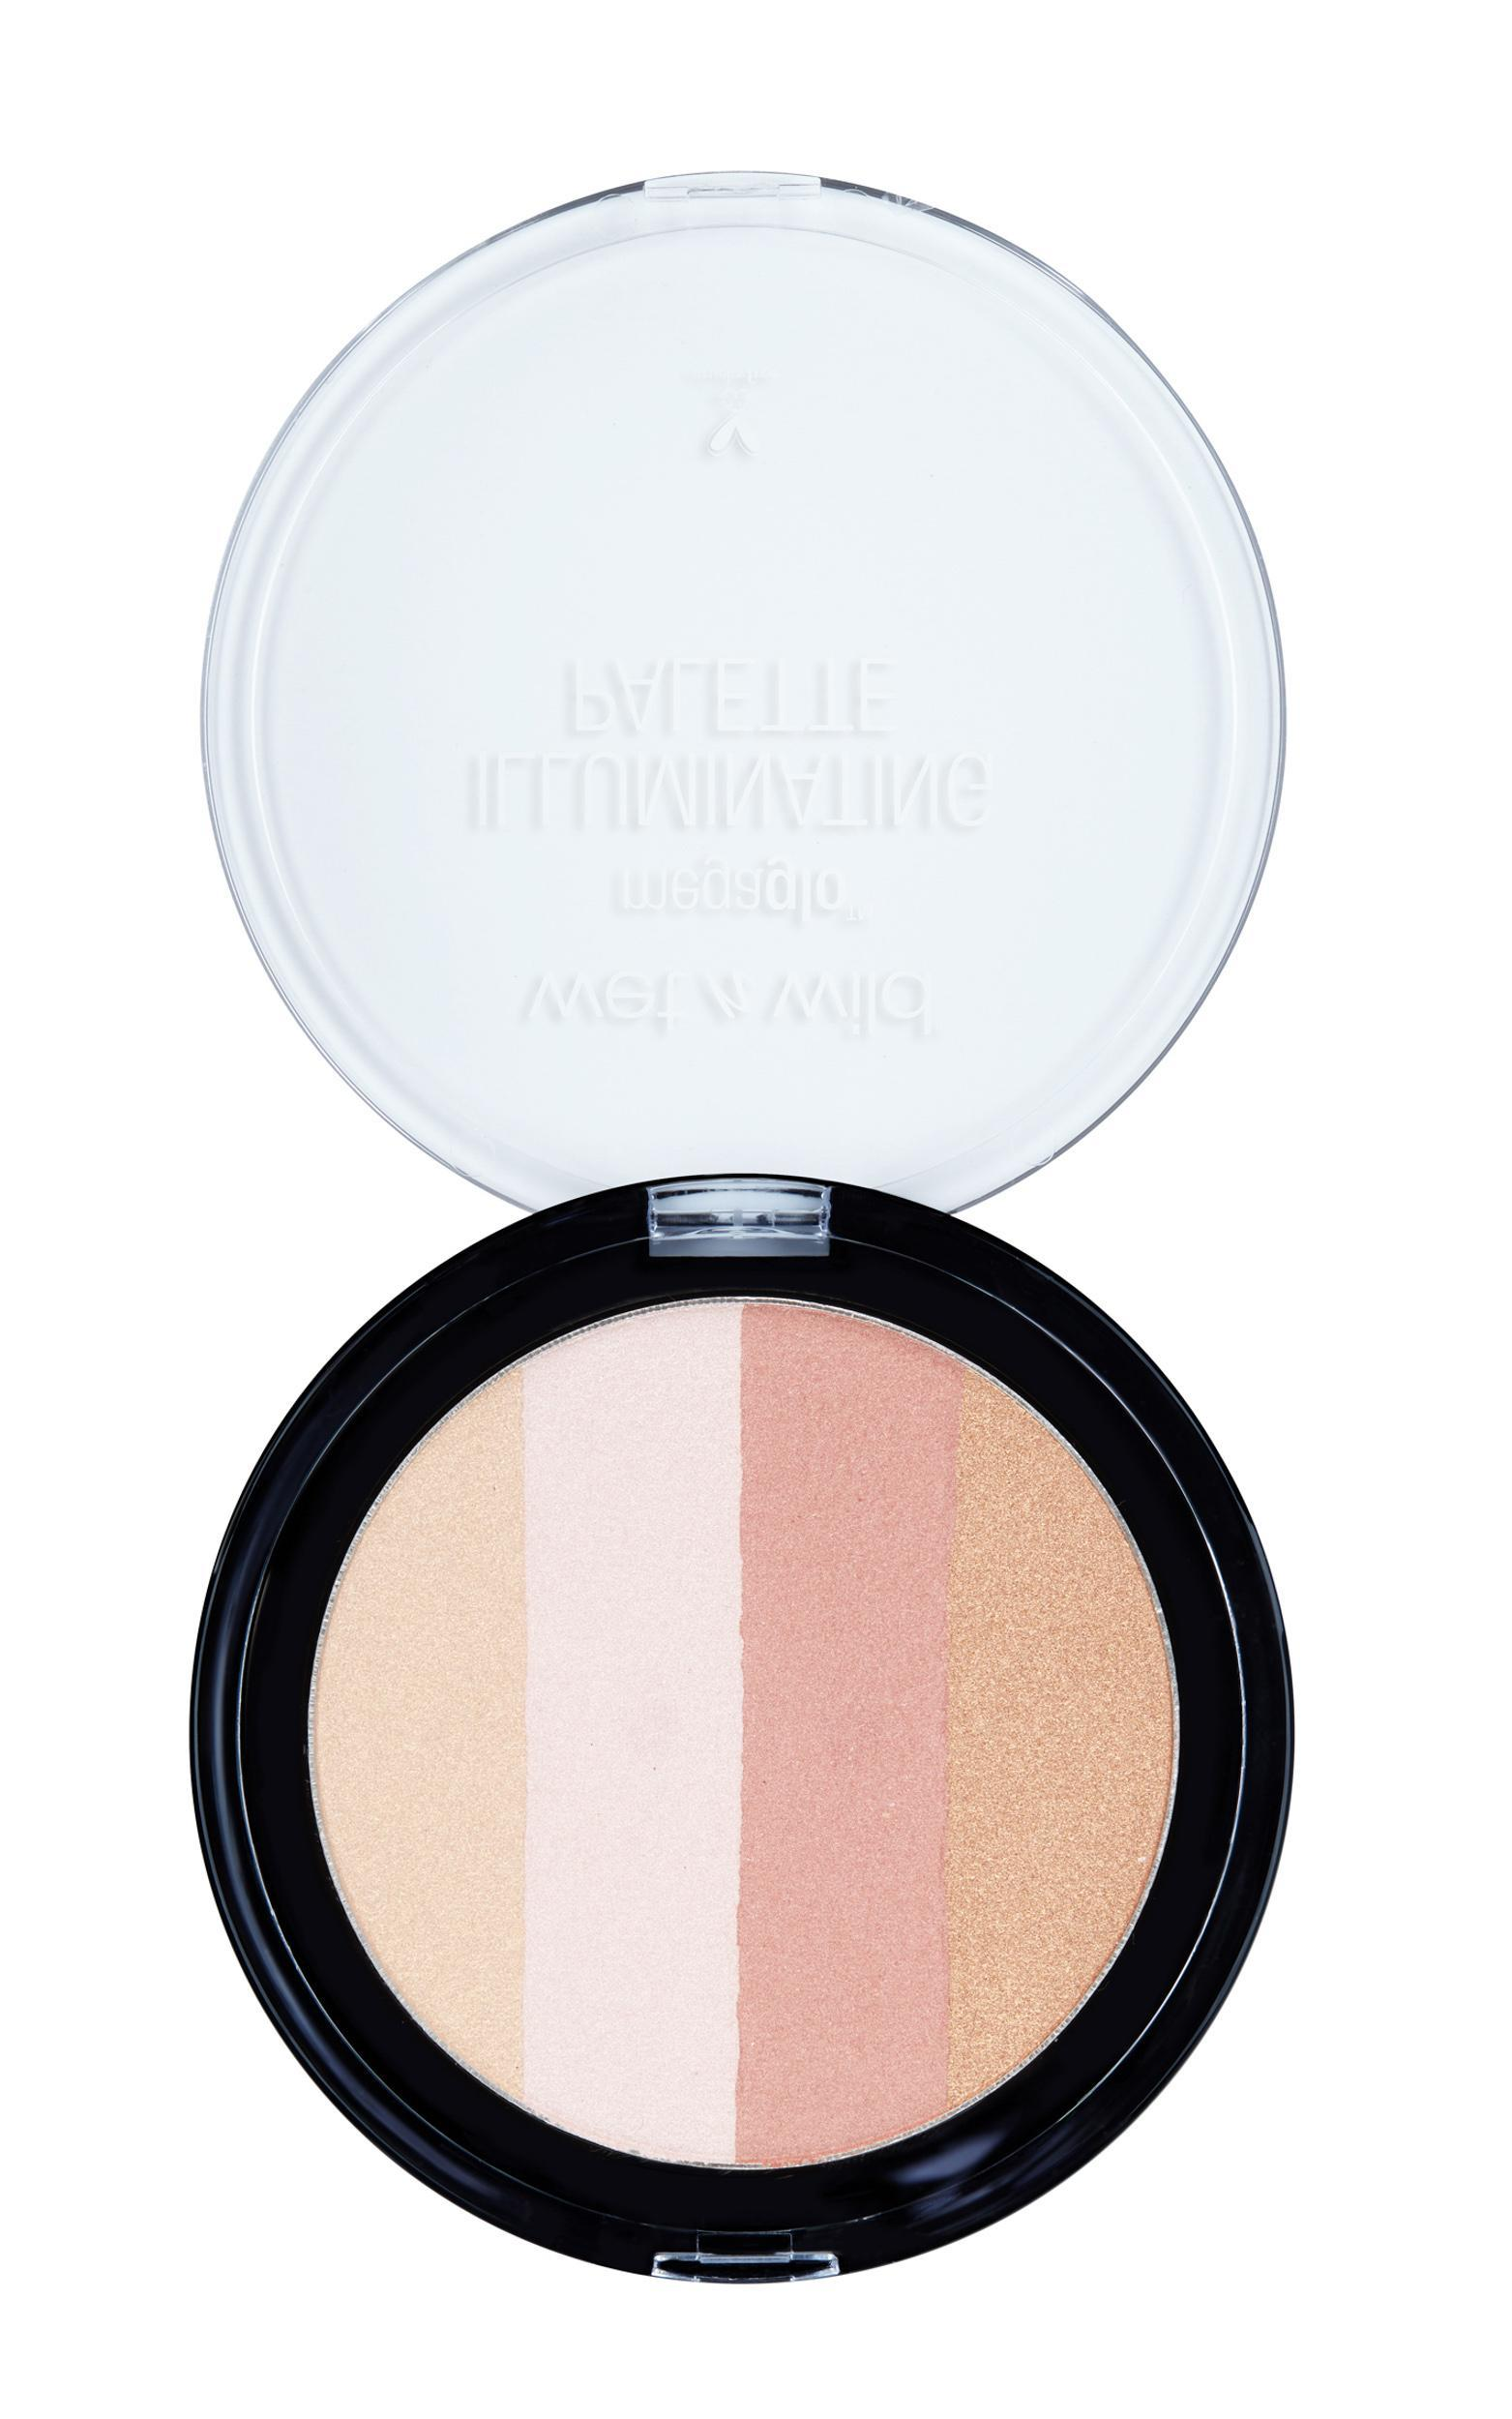 Wet N Wild - MegaGlo Illuminating Powder in Catwalk Pink , , hi-res image number null